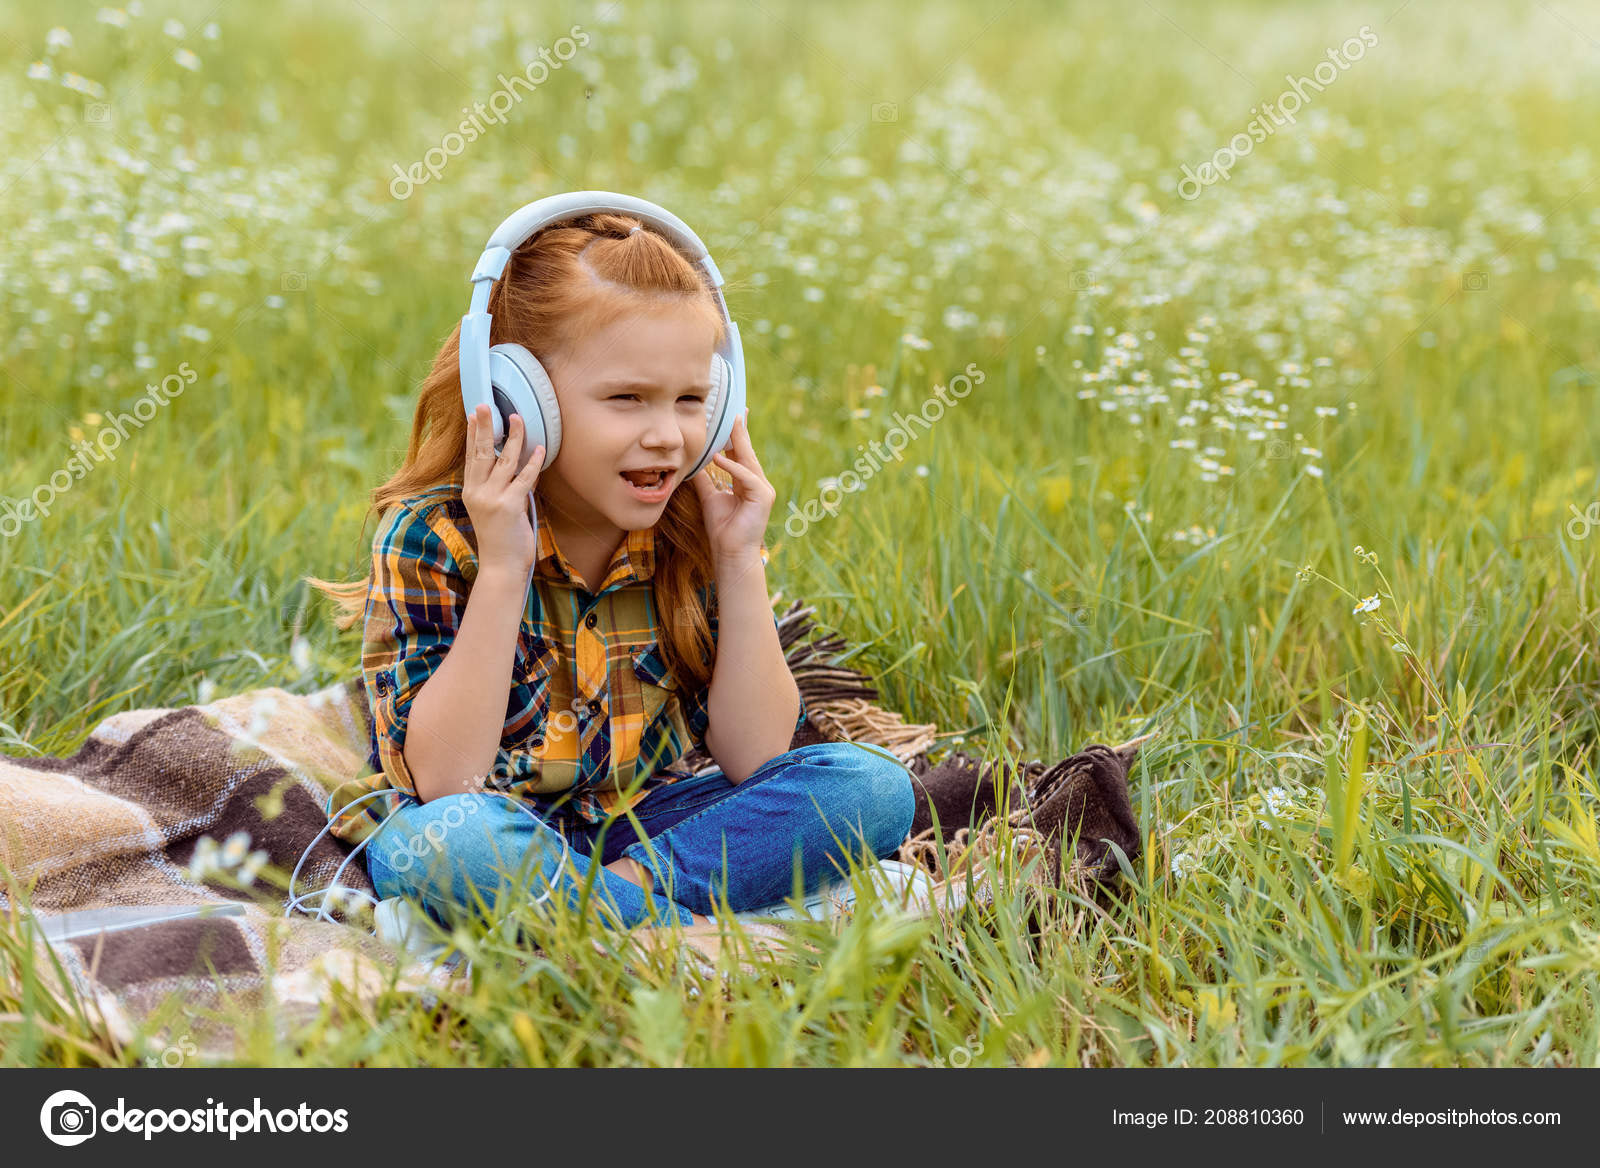 cute kid listening music headphone while sitting blanket field wild